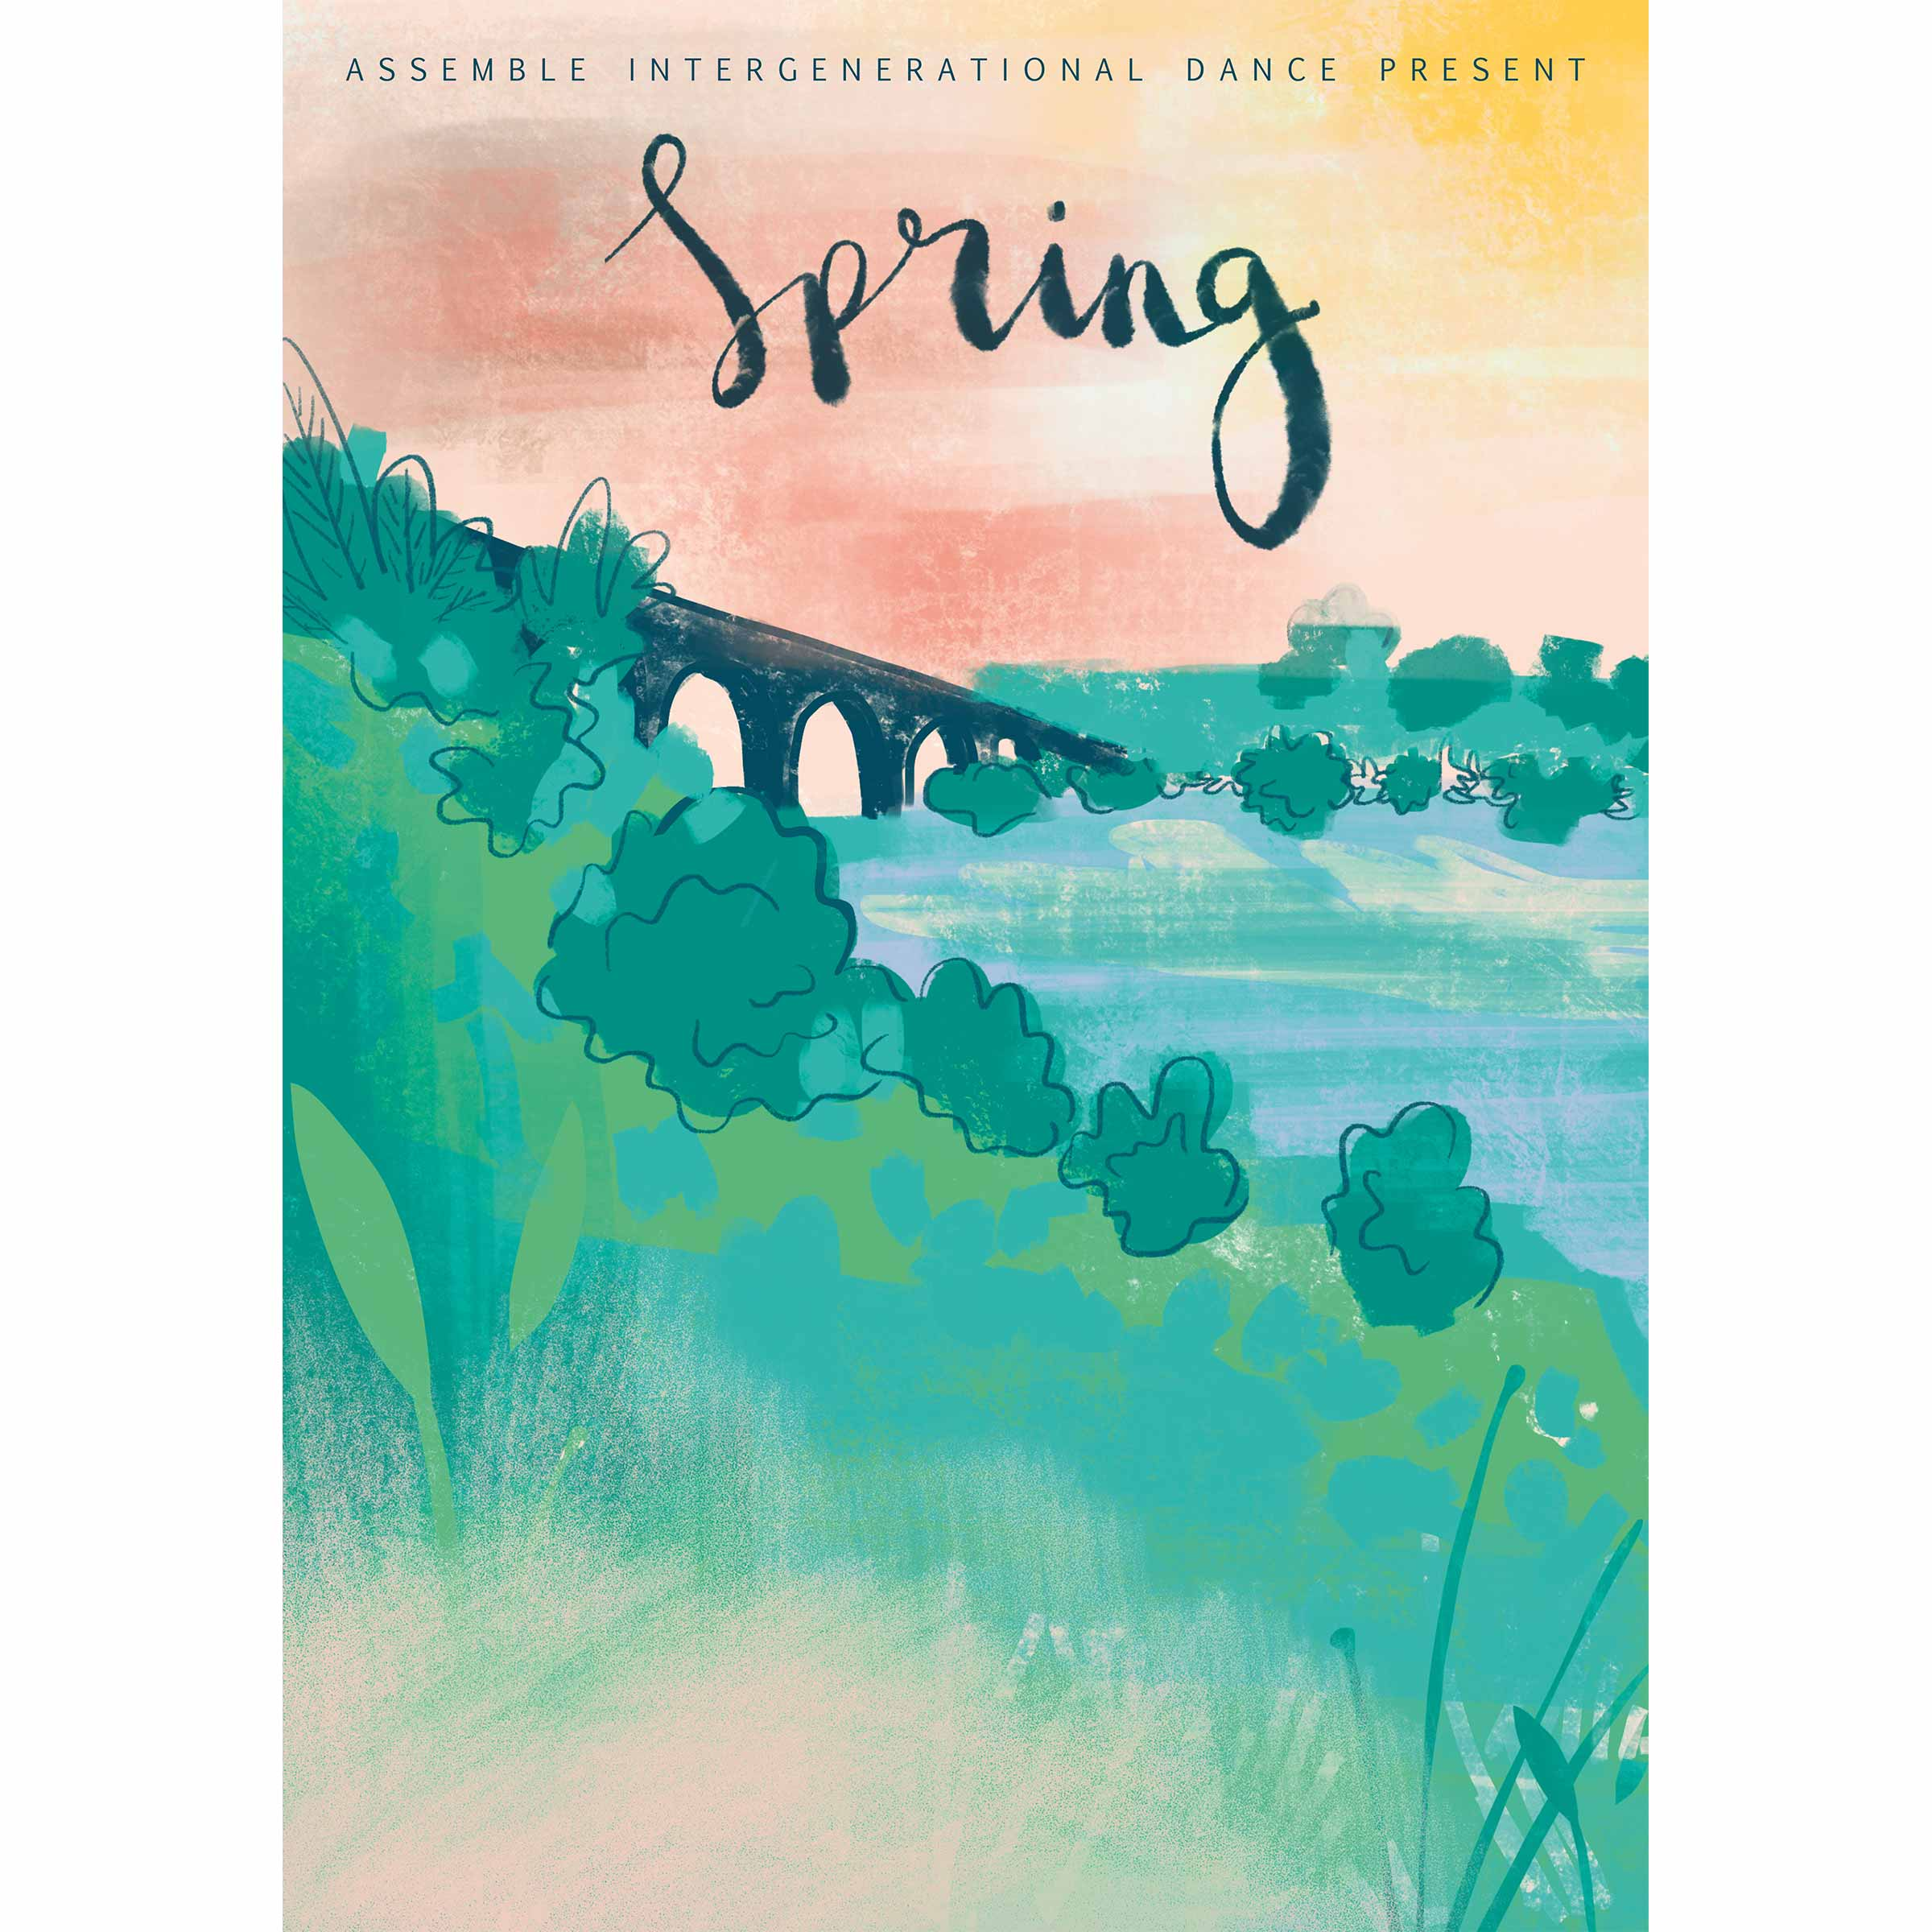 spring-performance-illustrated-poster-design-edinburgh-katie-chappell.jpg